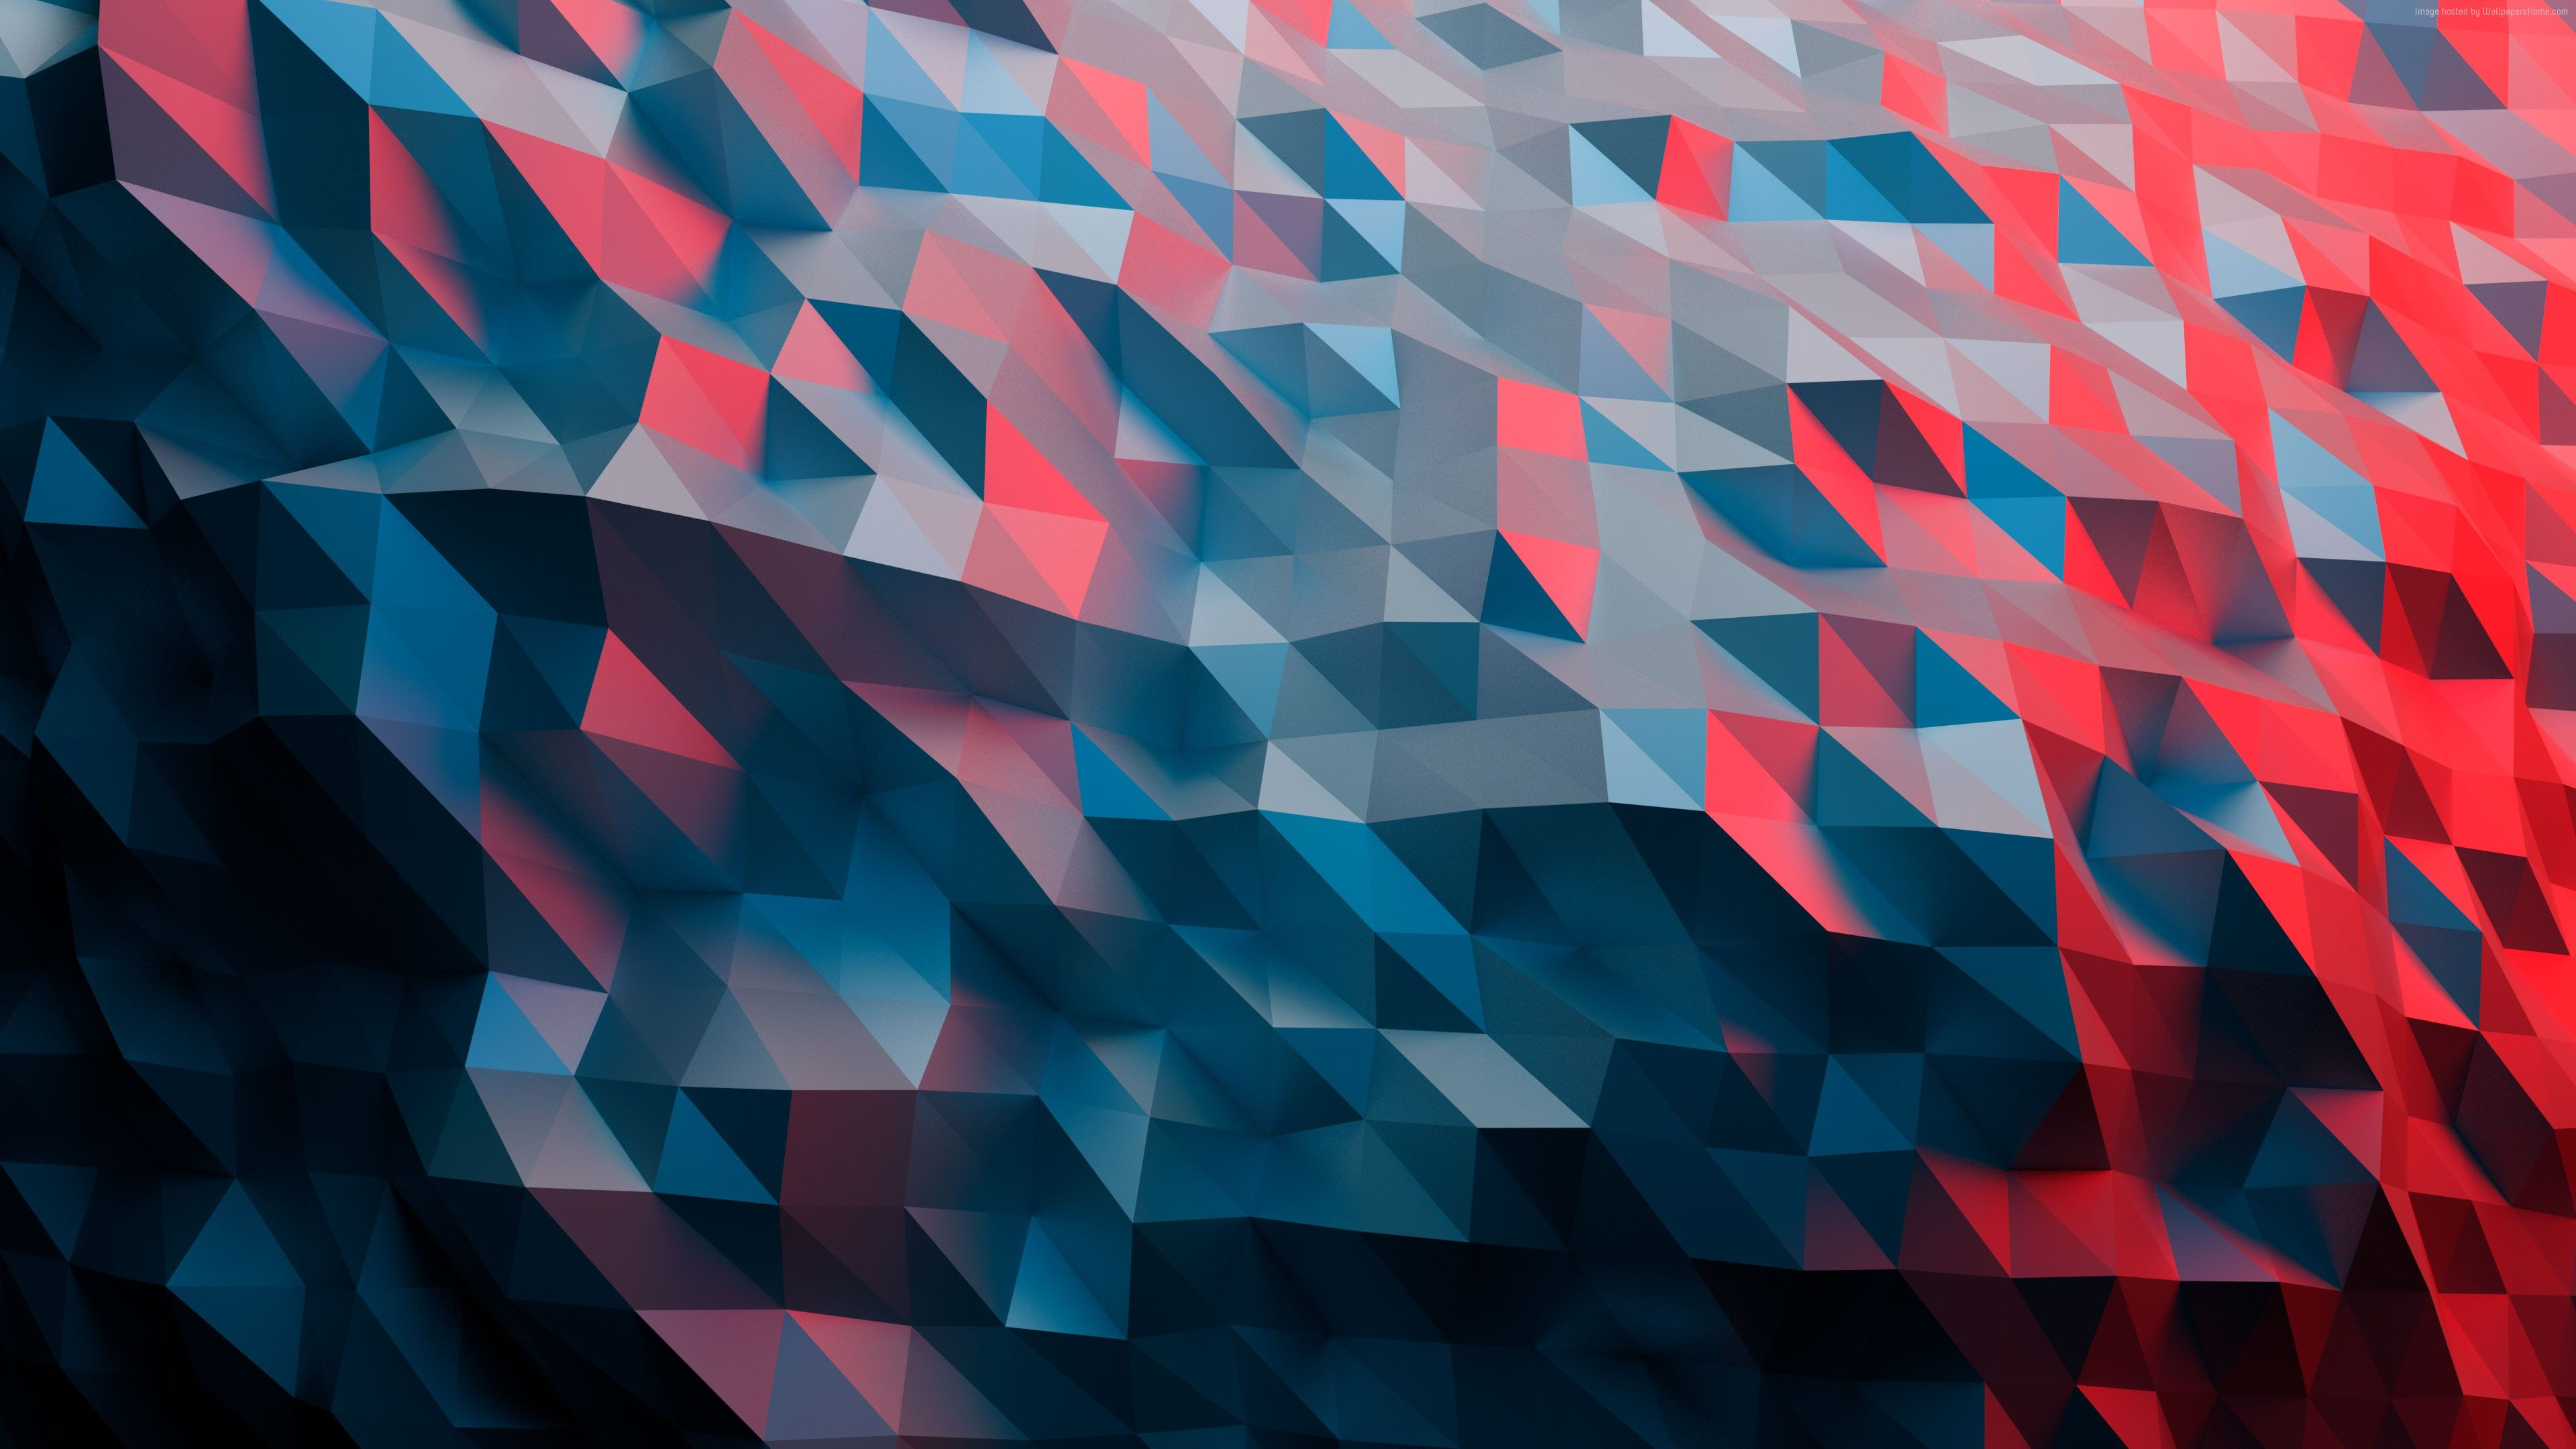 Wallpaper Polygon 4k Abstract With Images 3840x2160